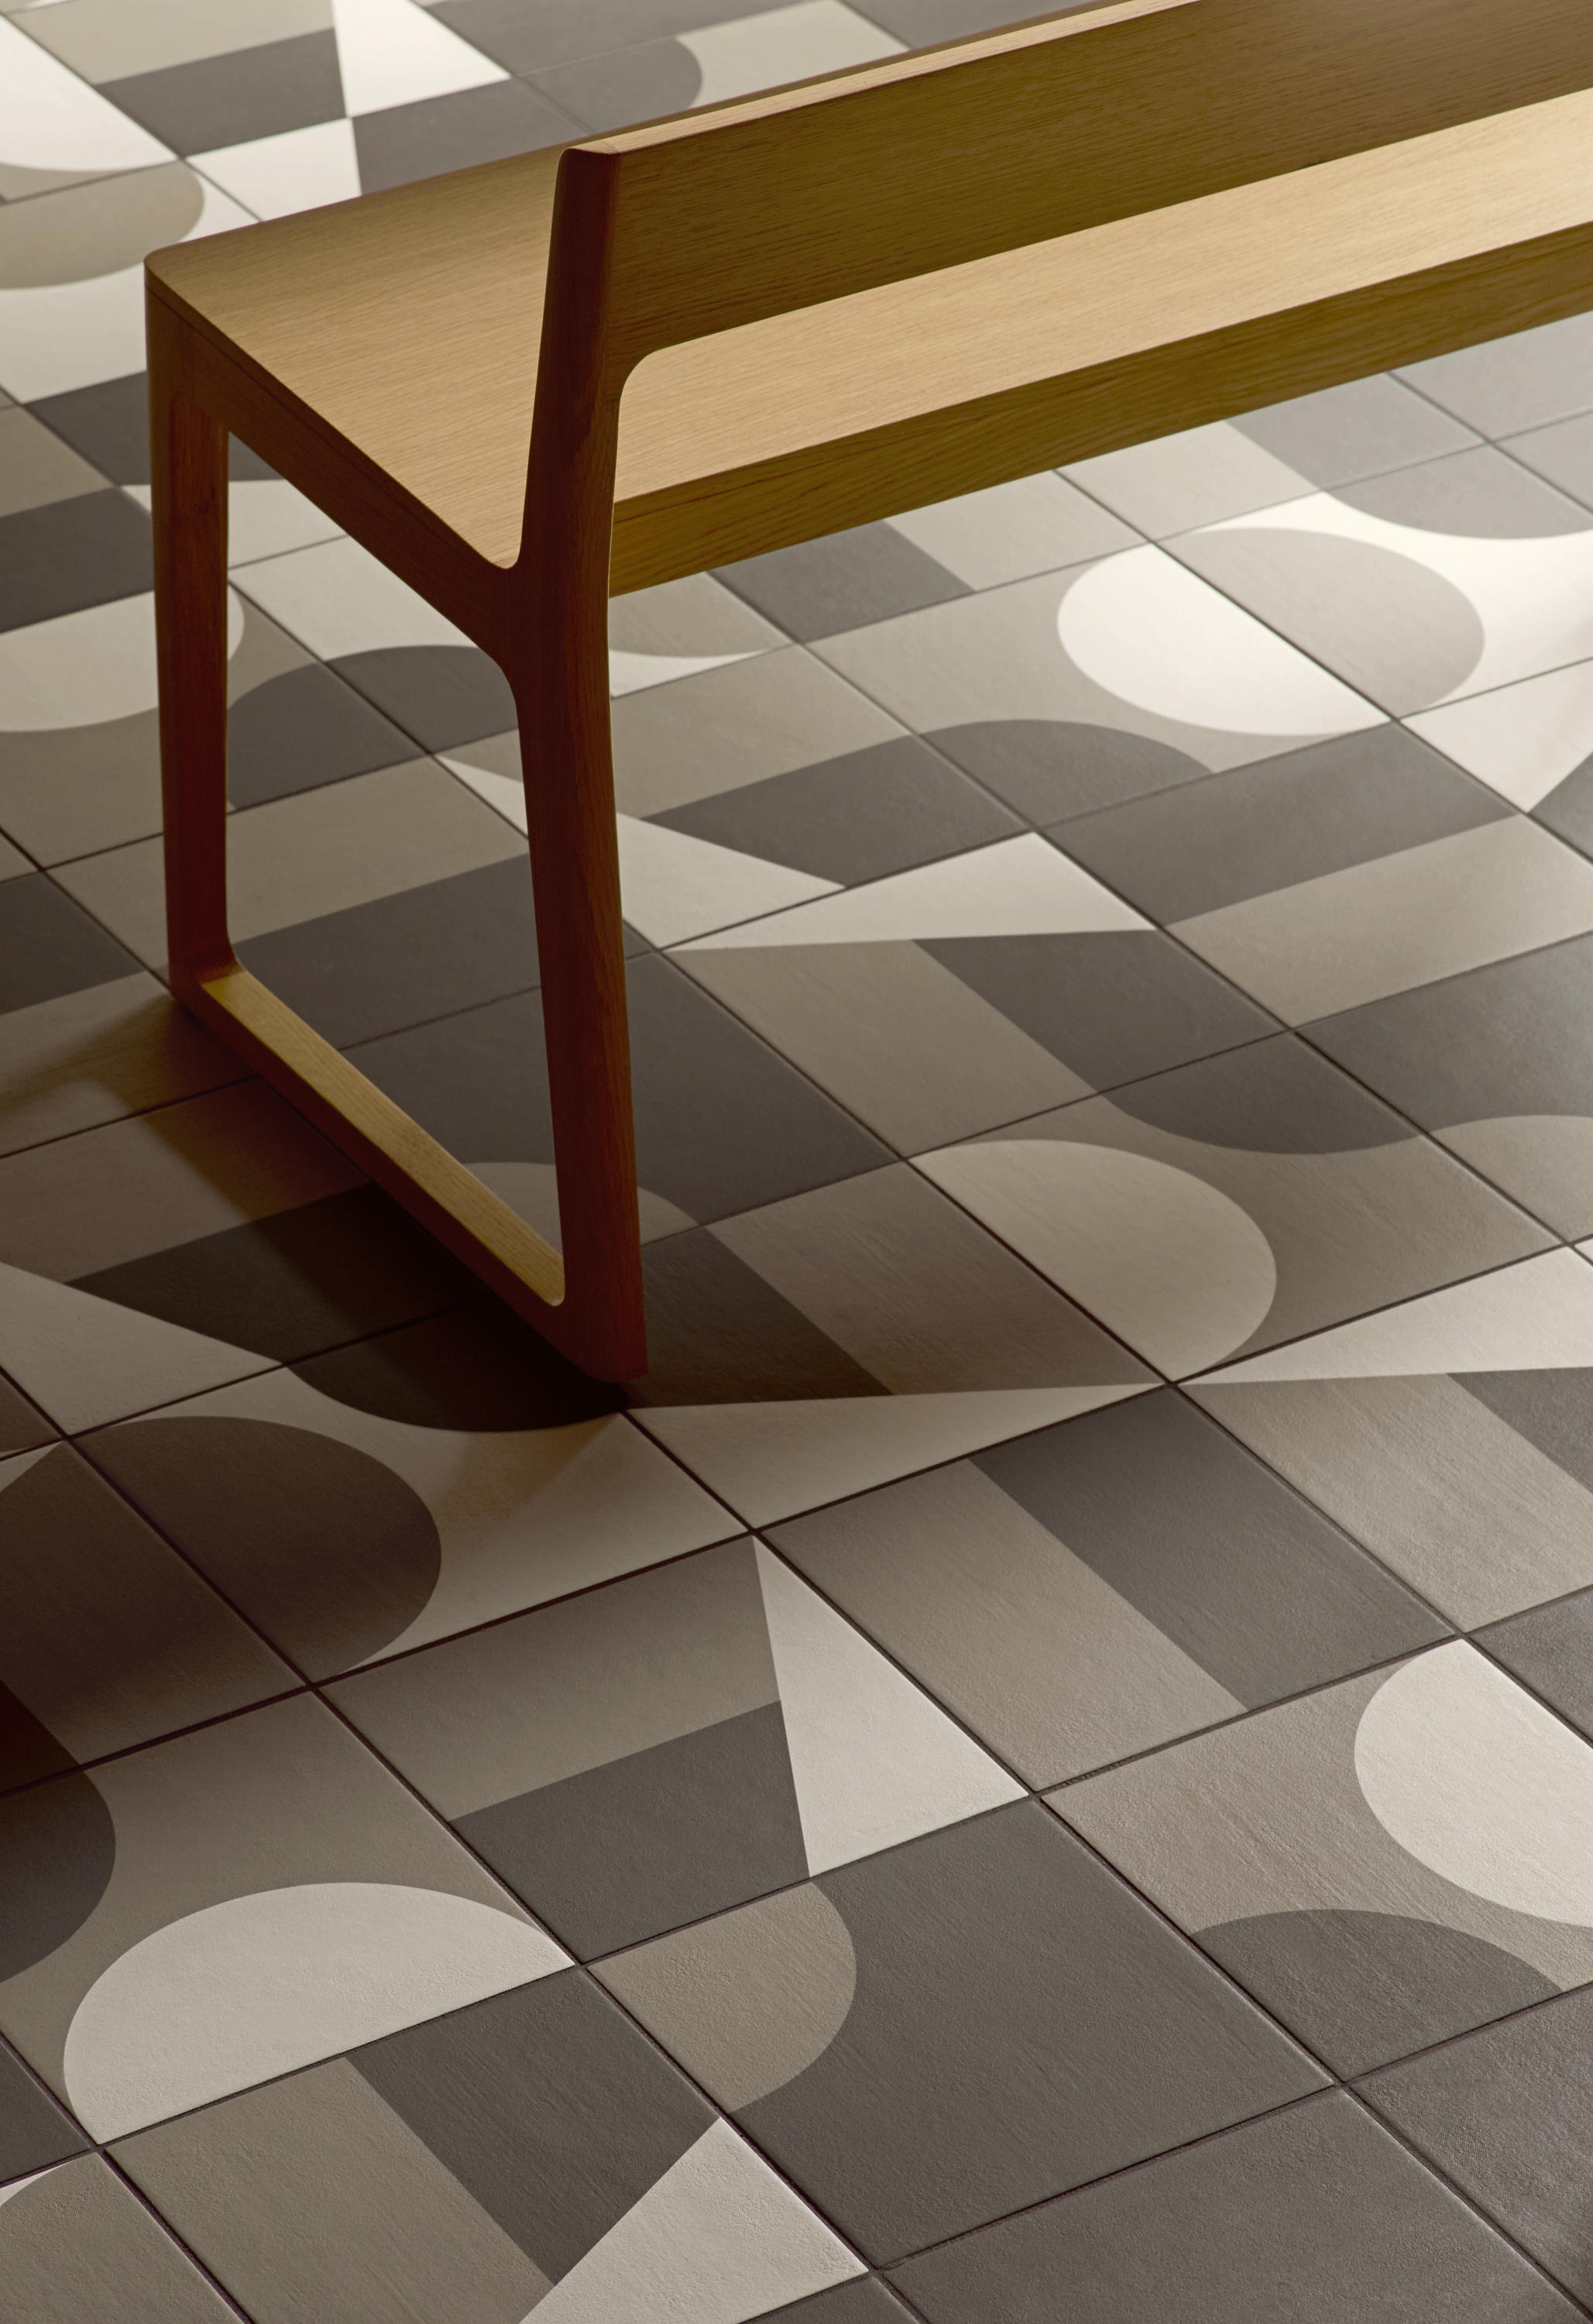 Puzzle floor tiles image collections tile flooring design ideas puzzle cerulean edge floor tiles from ceramiche mutina architonic ambient images doublecrazyfo image collections dailygadgetfo Choice Image